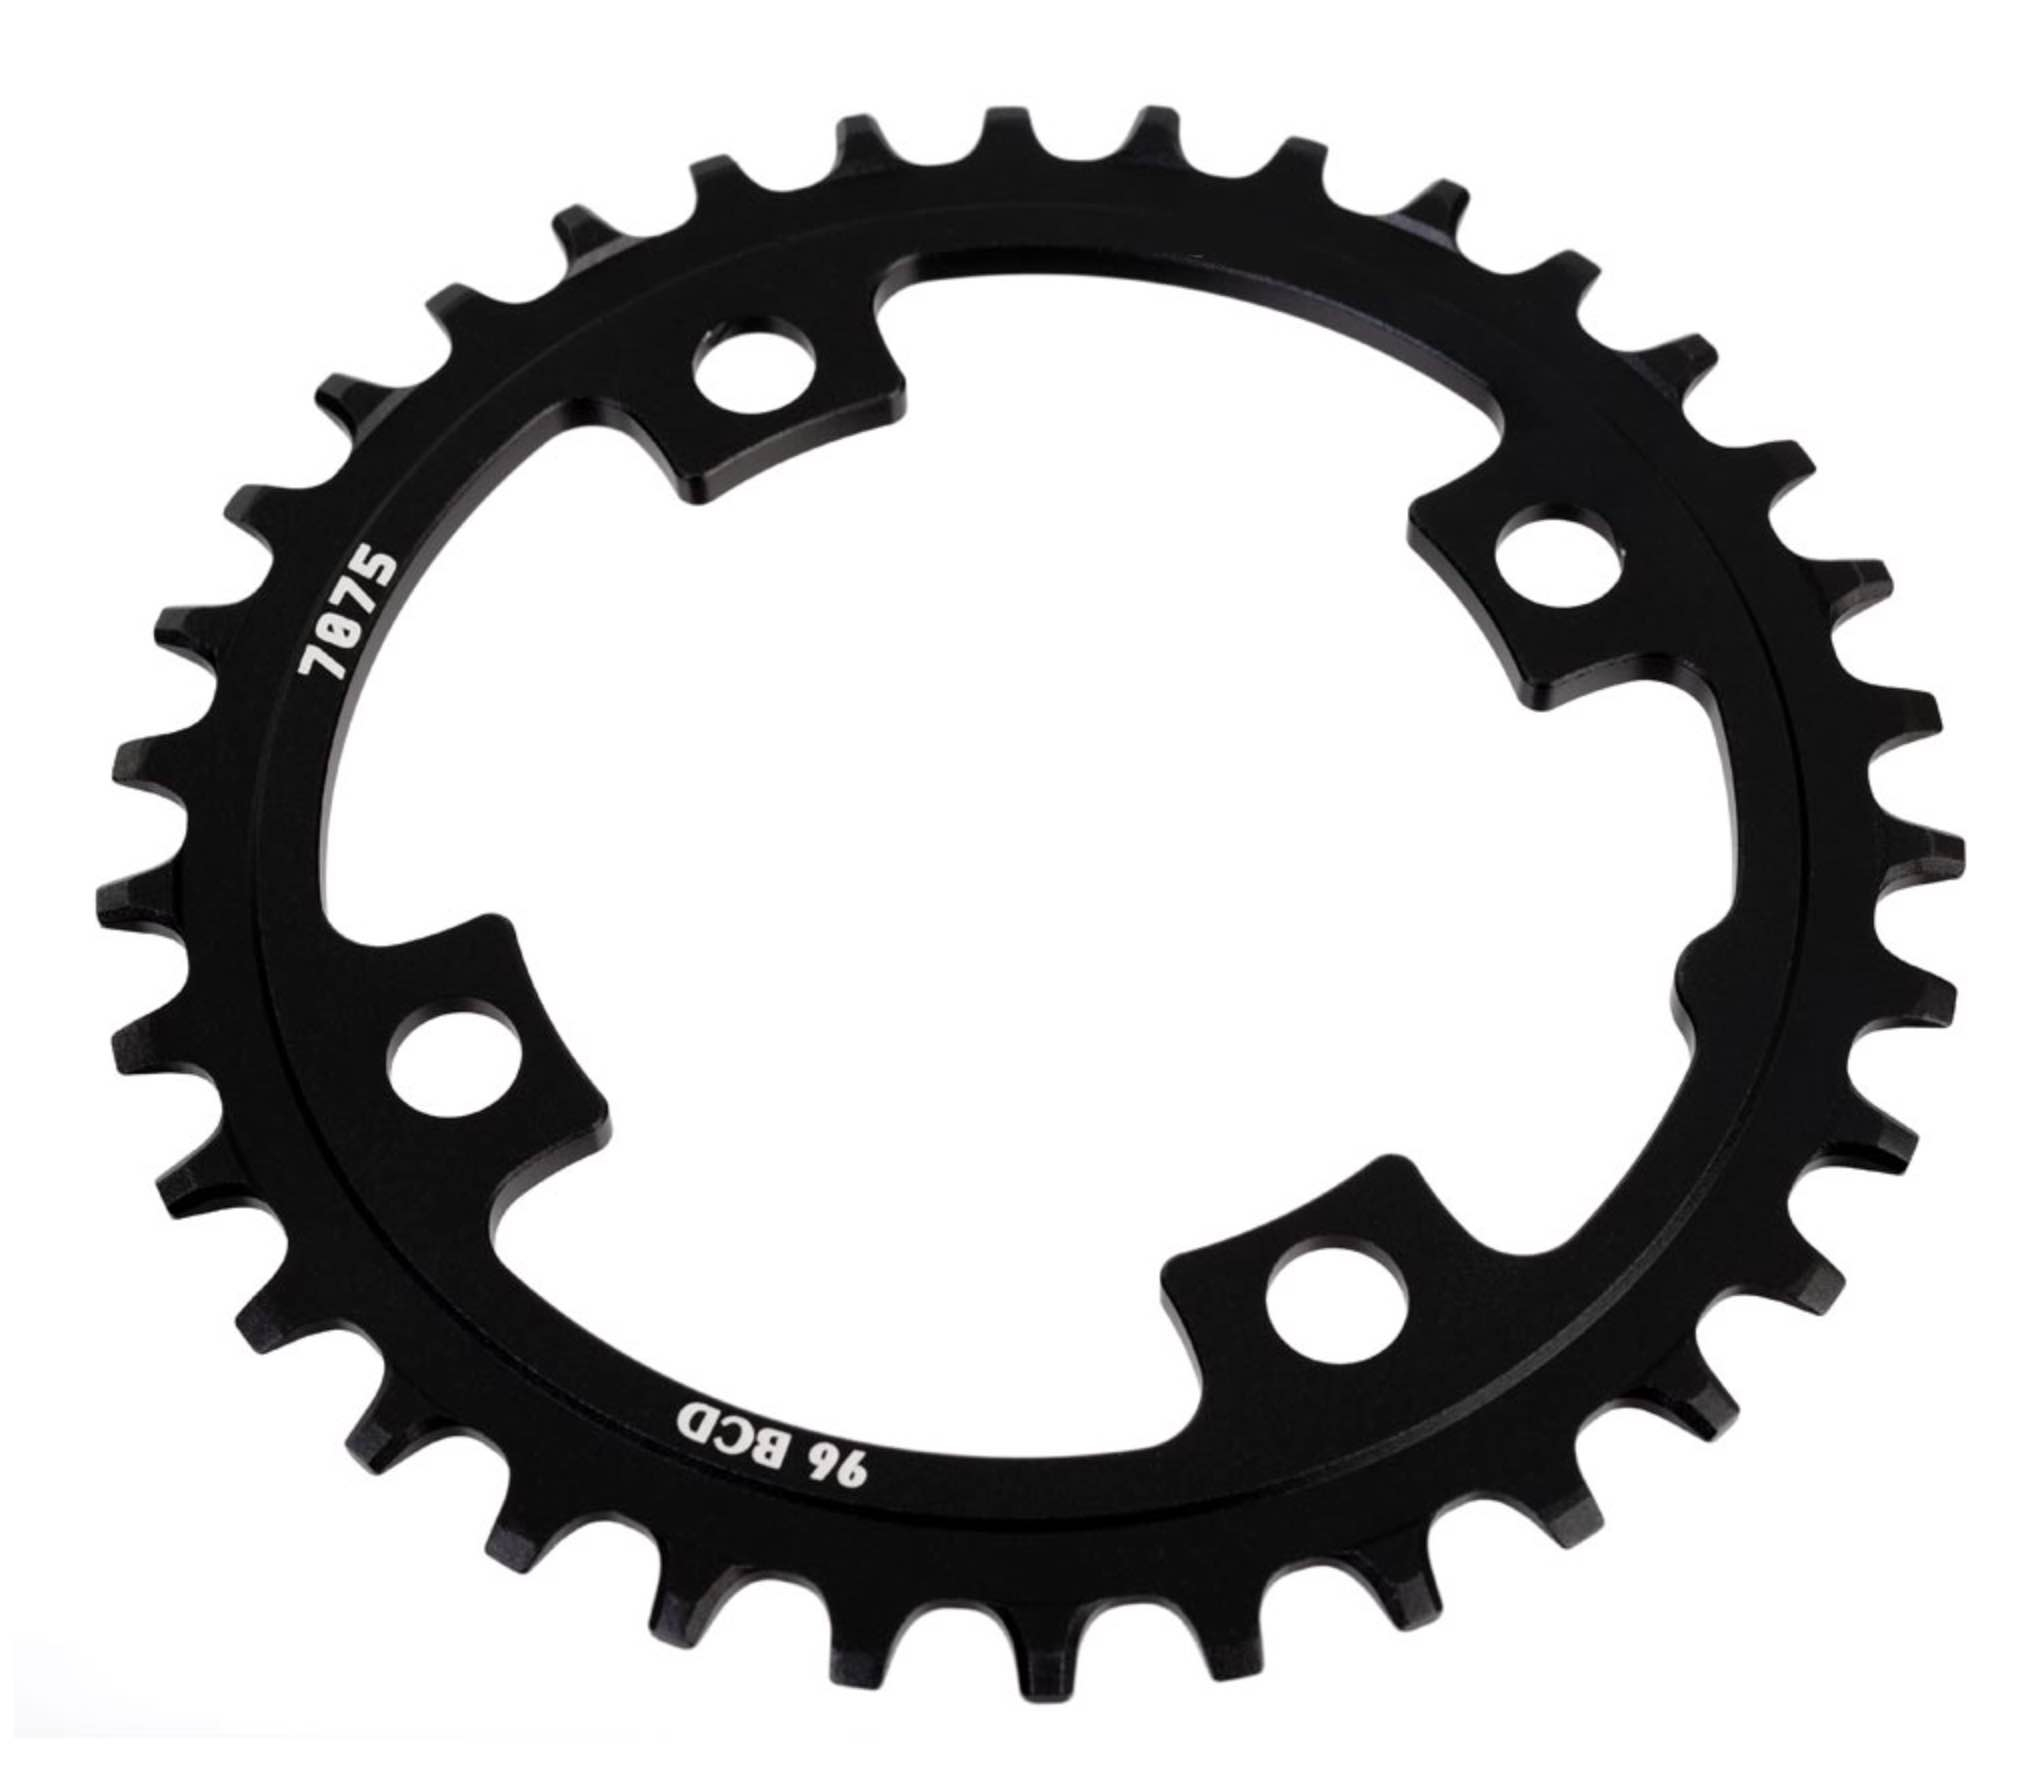 Sunrace klinge BCD 96 Alu Narrow Wide - sort - CRMX00 | chainrings_component